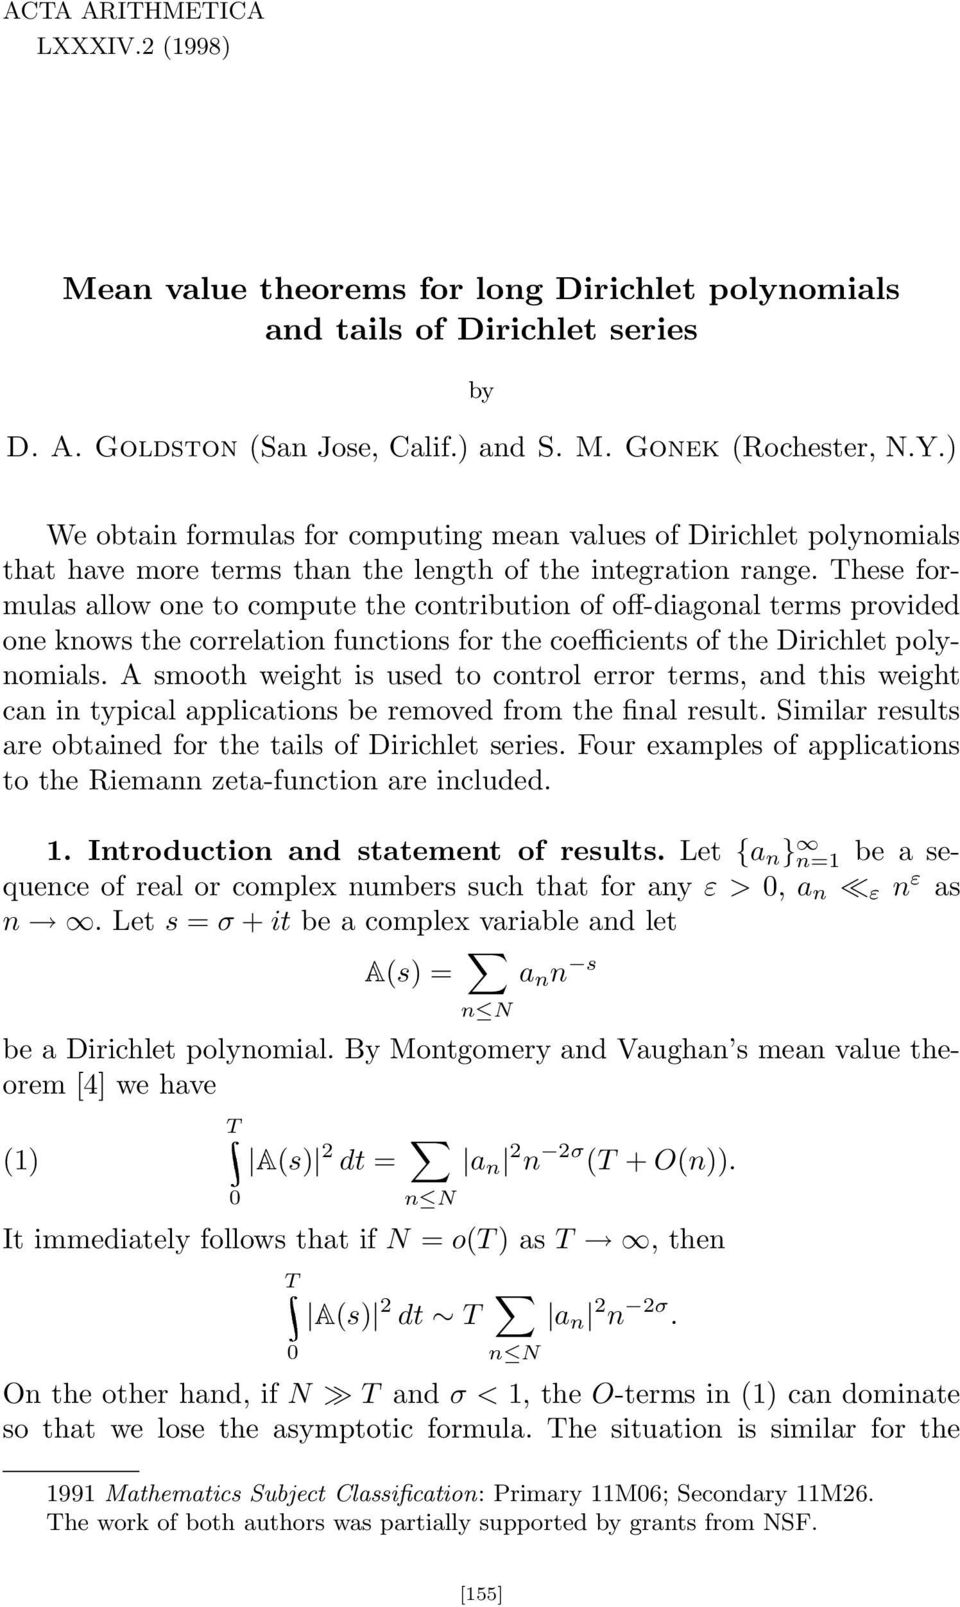 hese formulas allow one to compute the contribution of off-diagonal terms provided one knows the correlation functions for the coefficients of the Dirichlet polynomials.